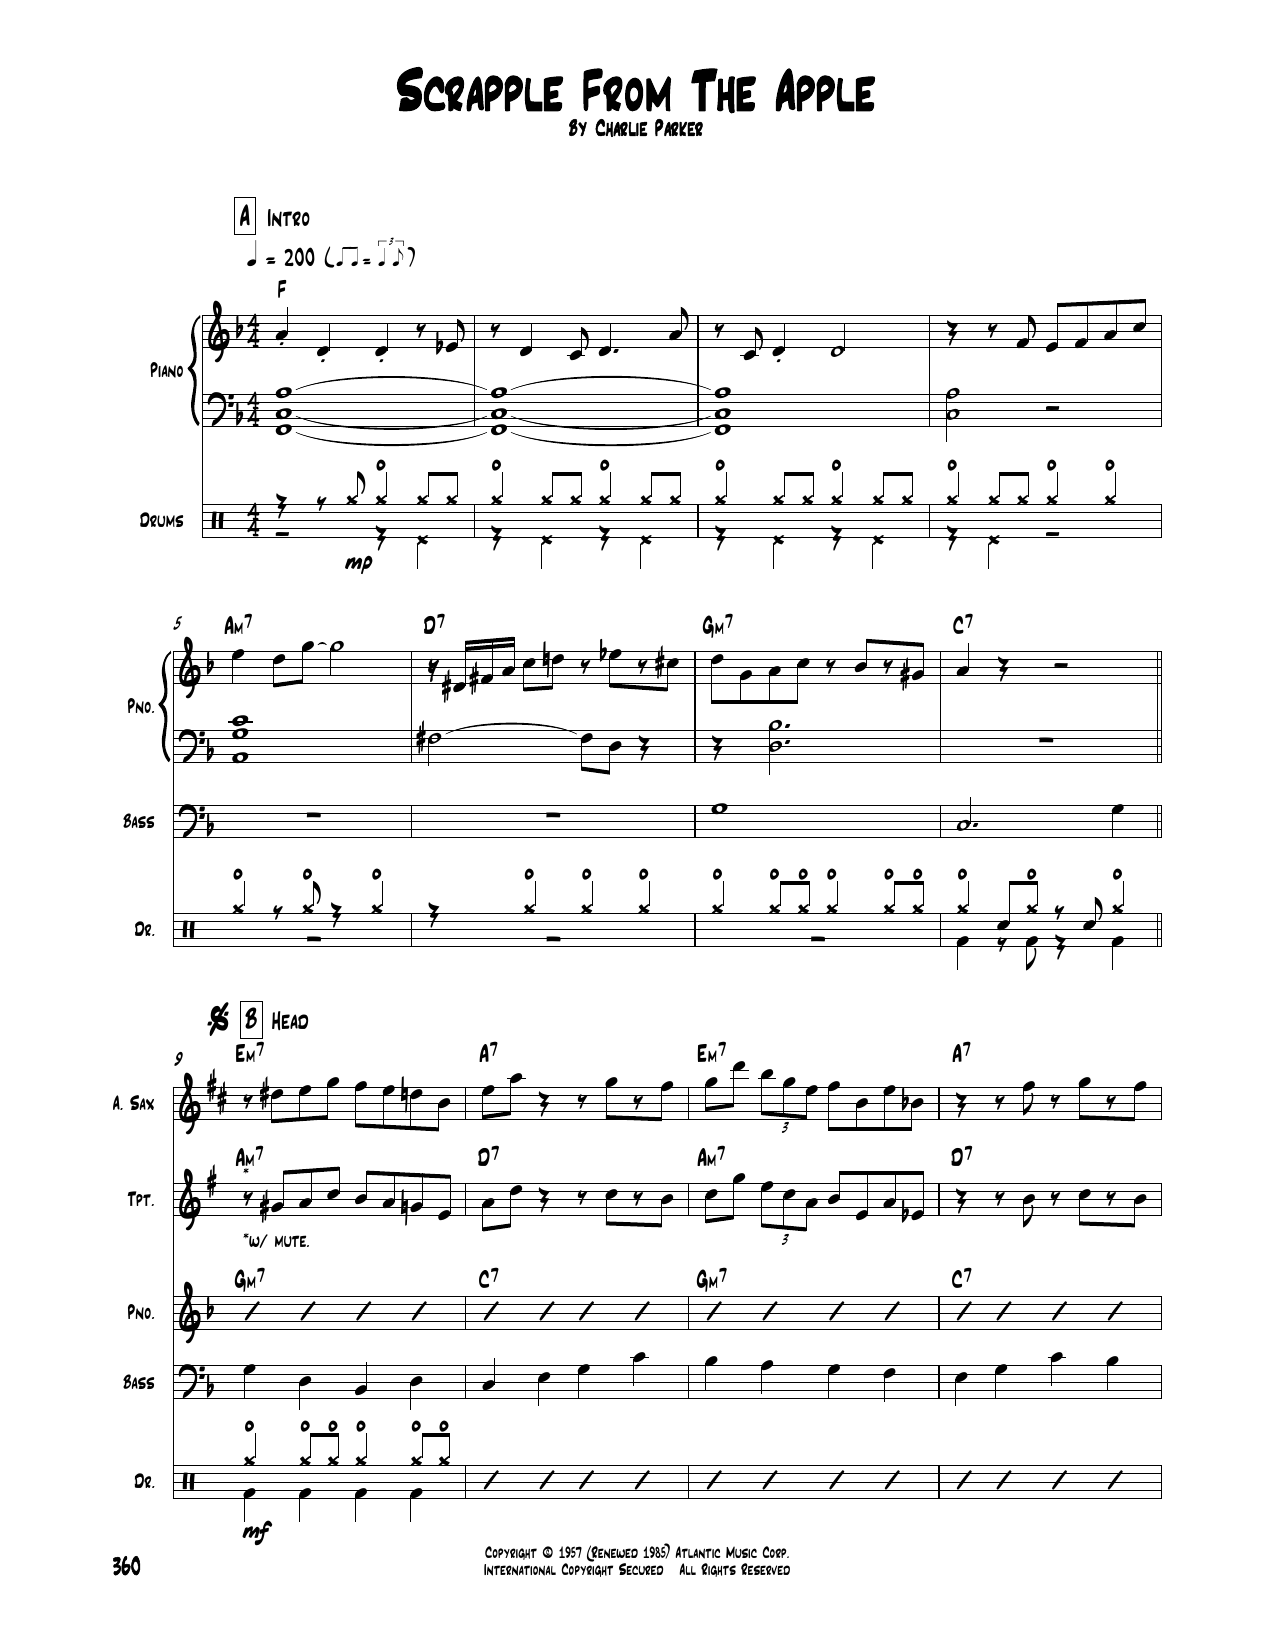 Charlie Parker Scrapple From The Apple Sheet Music Download Pdf Score 97247